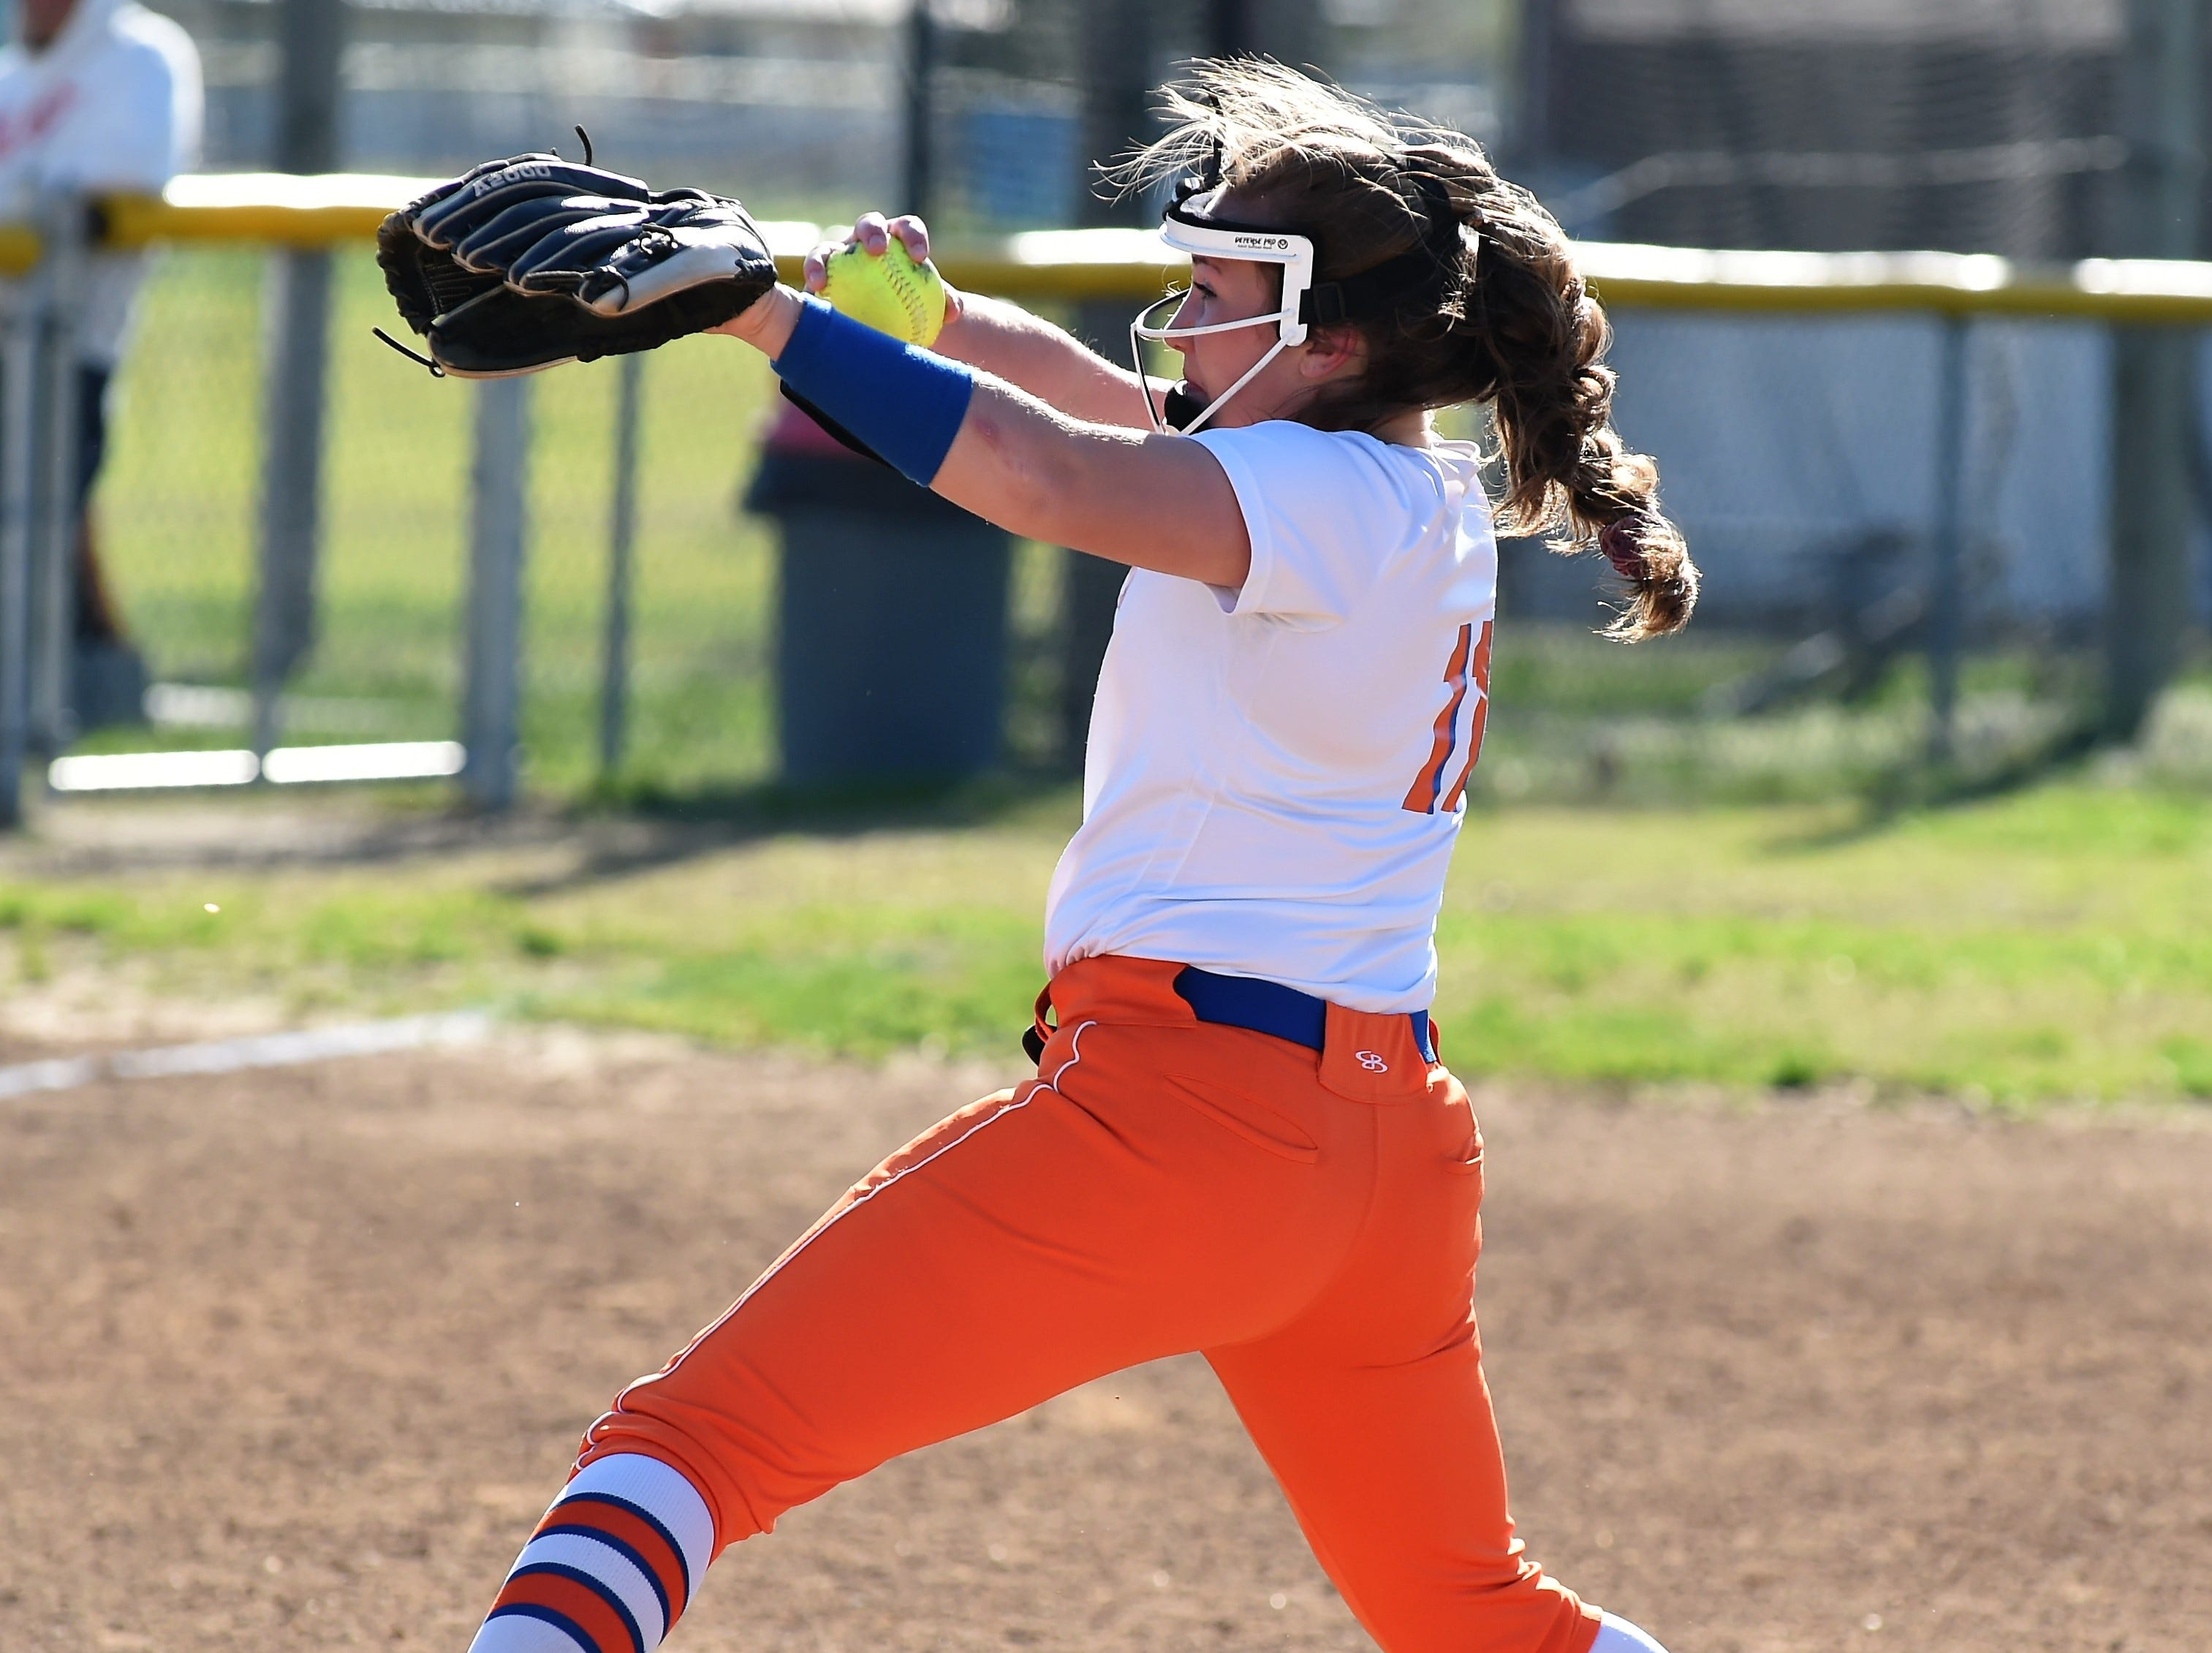 Delmar pitcher Ashlyn Tapman throws a pitch on Monday, April 15, 2019. The Wildcats defeated Padua Academy, 6-2.